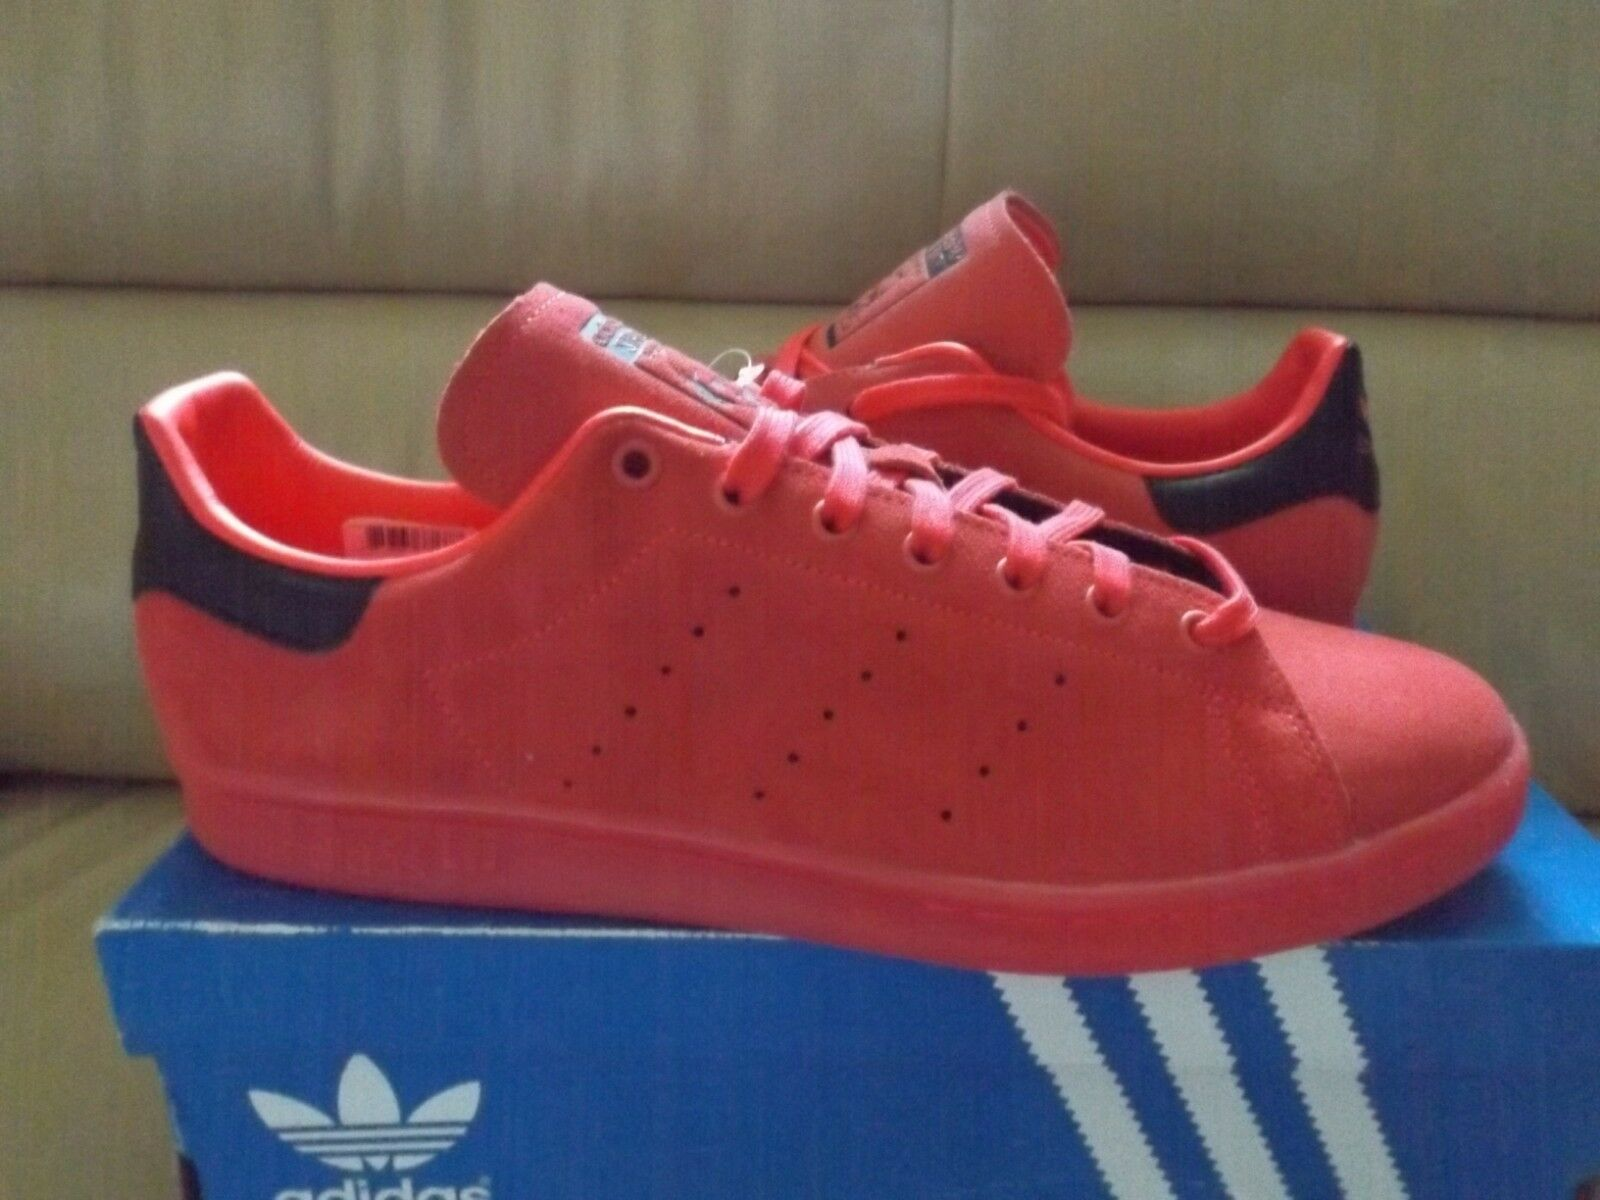 Adidas Stan Smith Men's Athletic Shoes Size 13 Shock Red Suede S80032 New w'Box